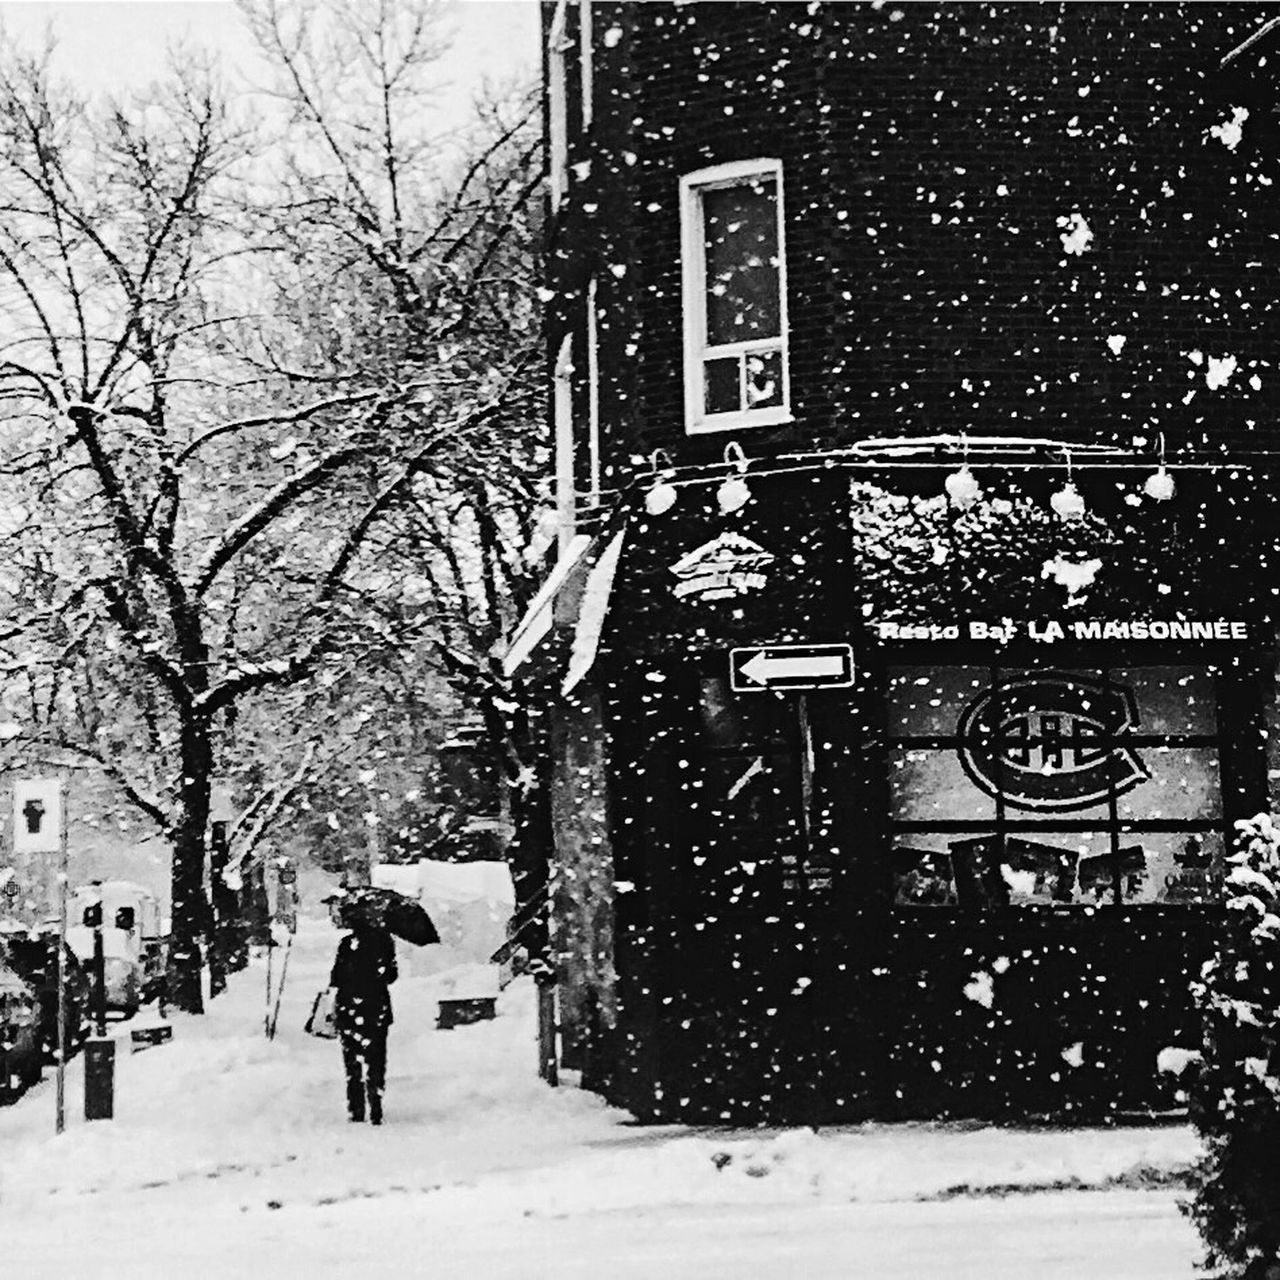 Go Habs Winter Snow Cold Temperature AMPt Community Streetphoto_bw EyeEm Best Shots - Black + White Bw_collection Snow ❄ Winter The Week Of Eyeem Streetphotography Blackandwhite Montréal